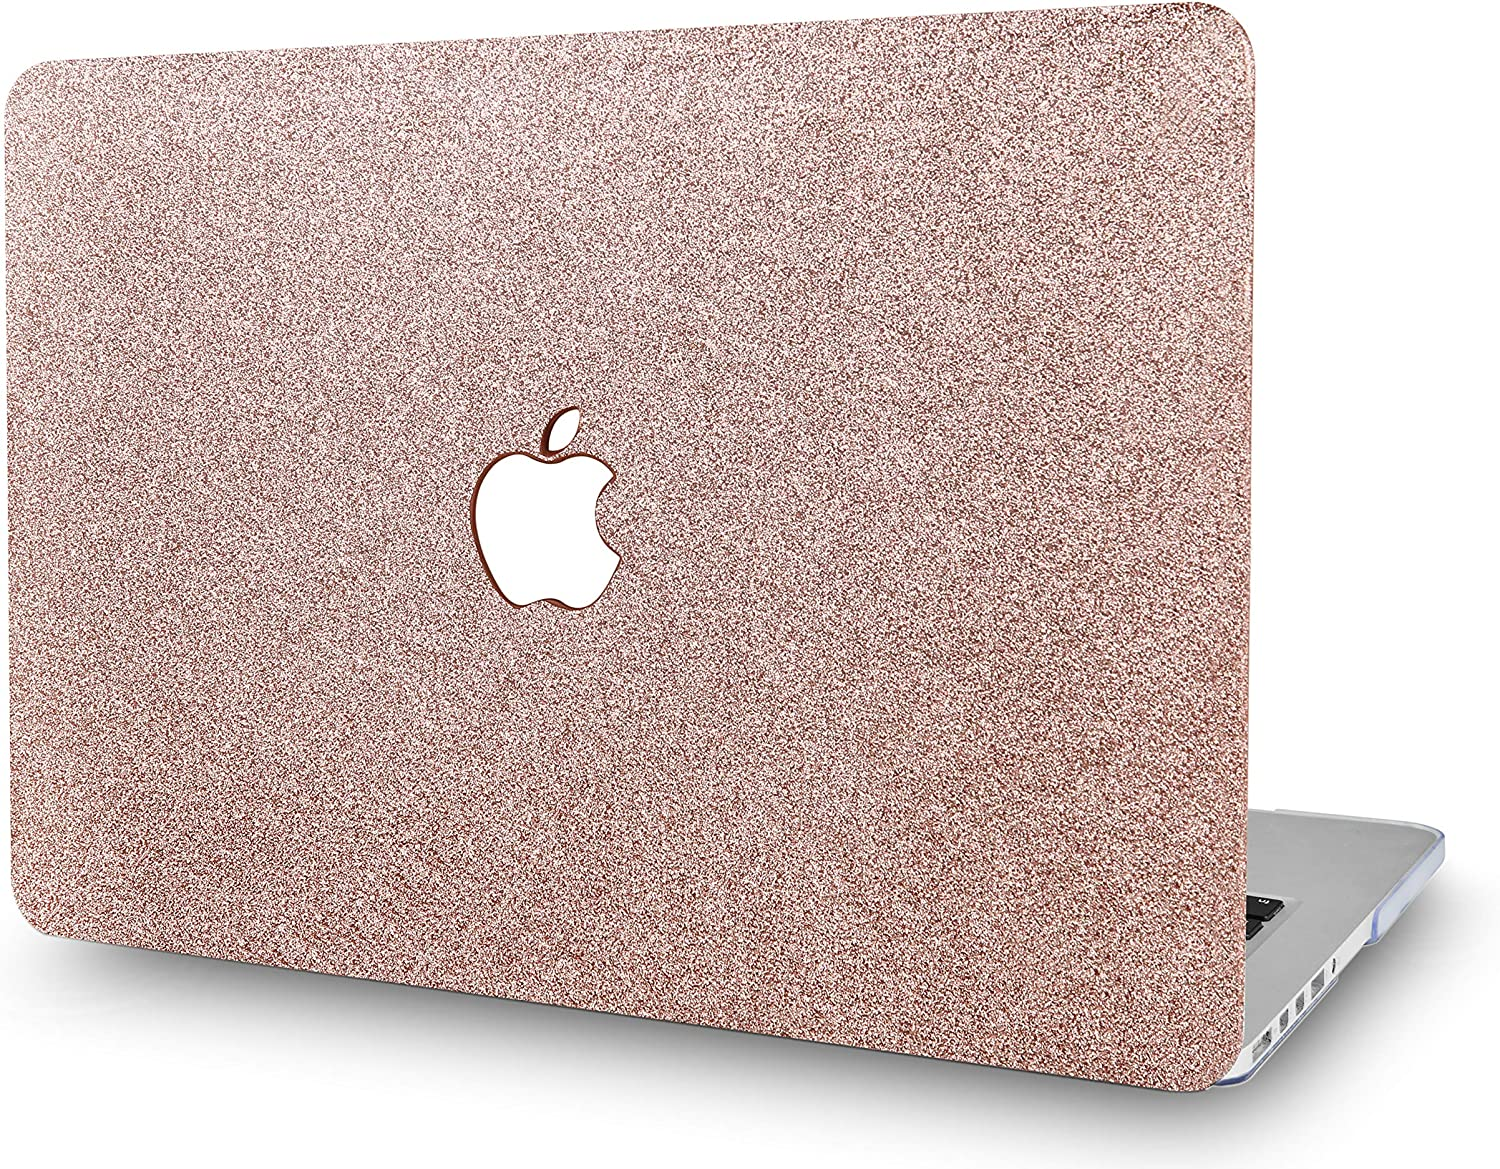 "KECC Laptop Case for MacBook Pro 15"" (2019/2018/2017/2016) Plastic Hard Shell Cover A1707/A1990 (Rose Gold Sparkling)"